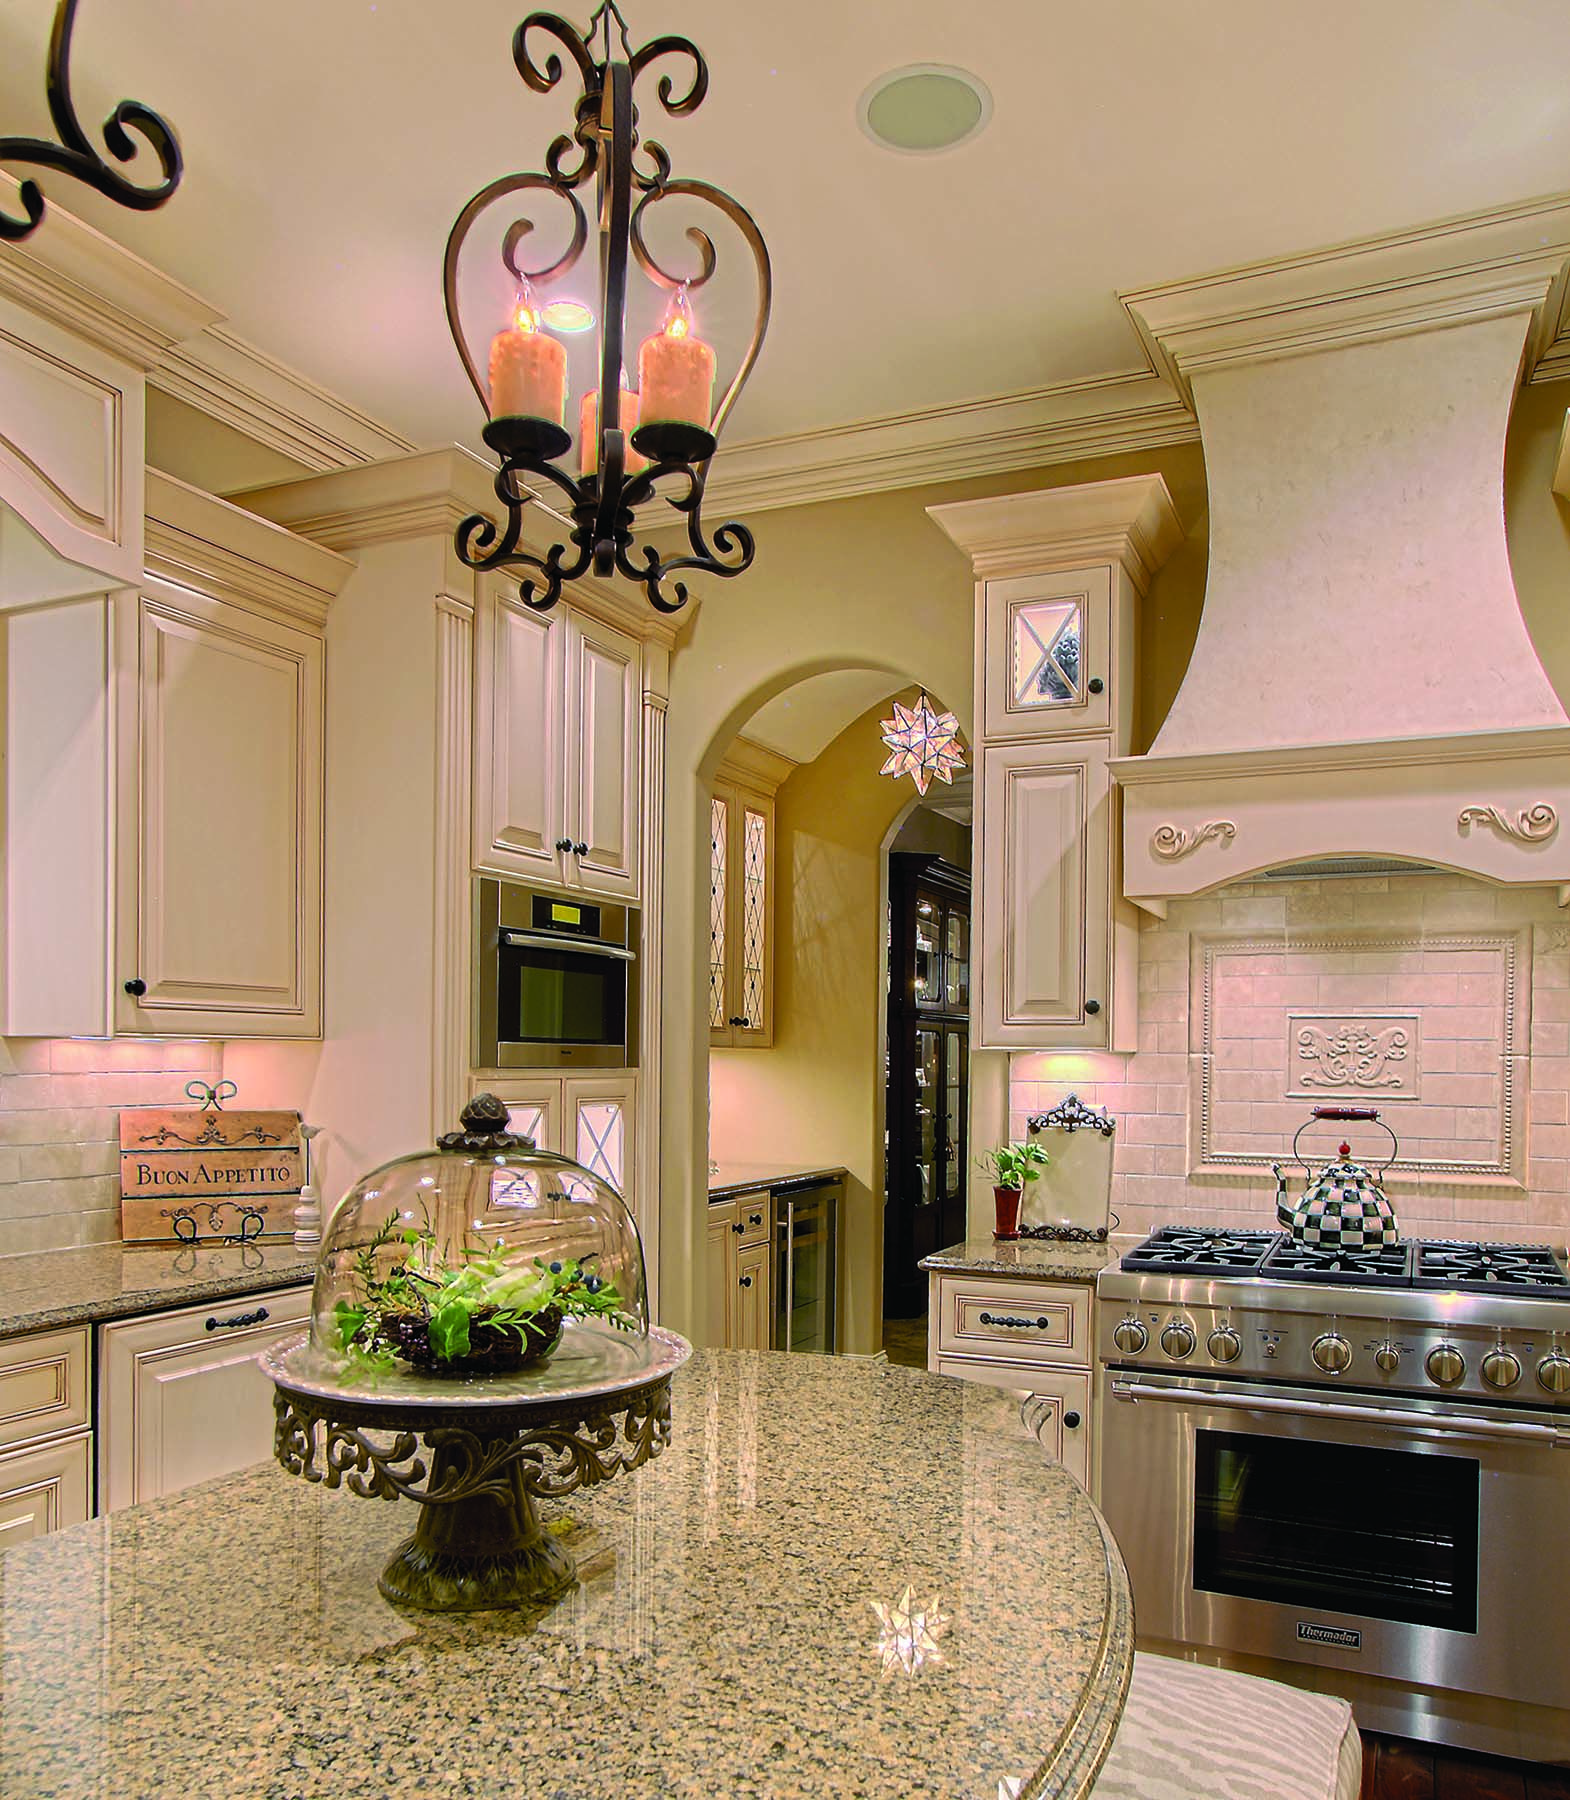 Kitchen designs - Cocinas guzman ...